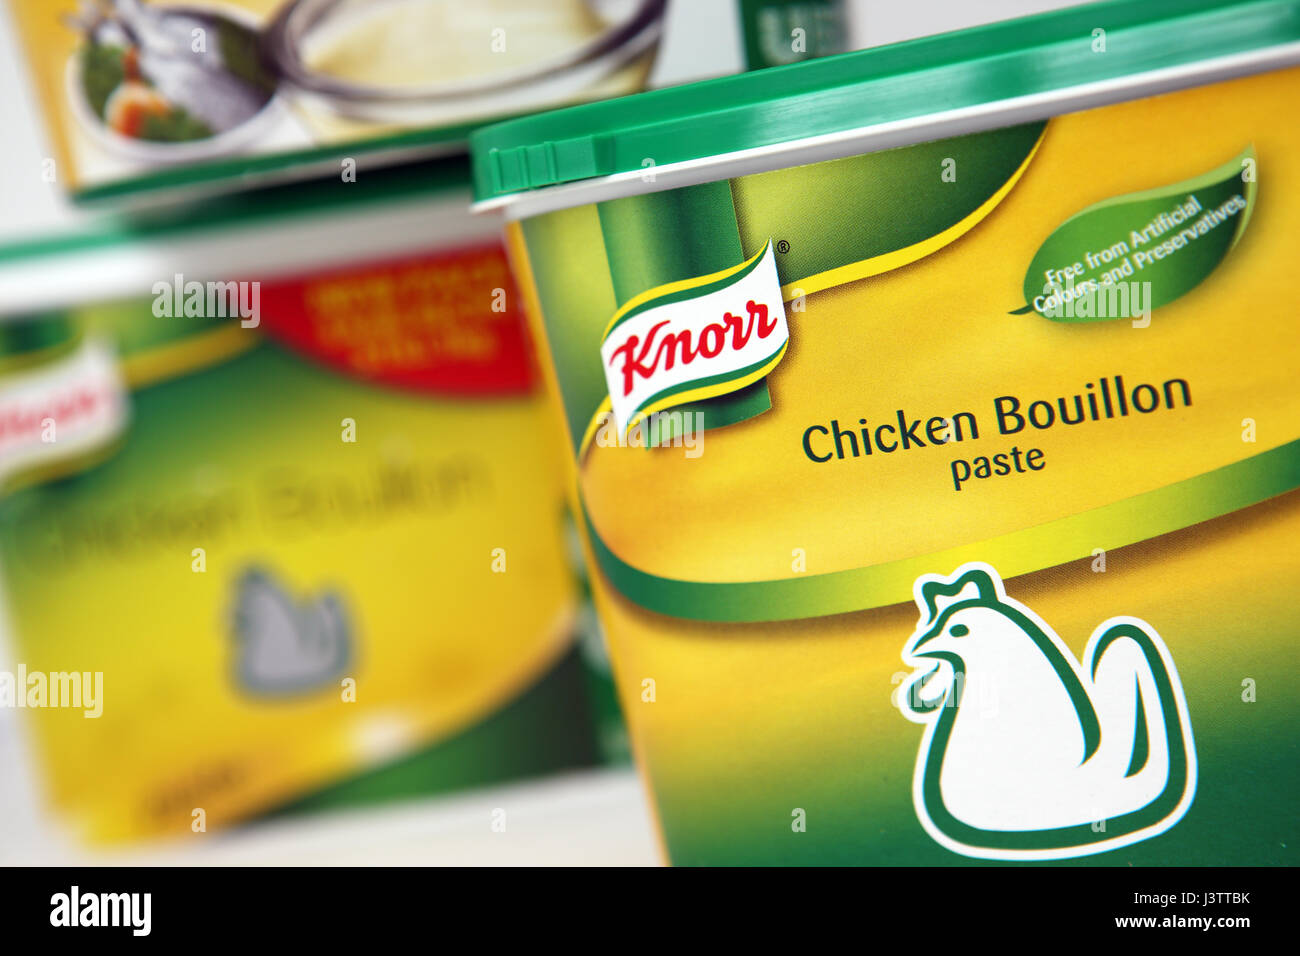 Know Chicken bouillon or stock - Stock Image